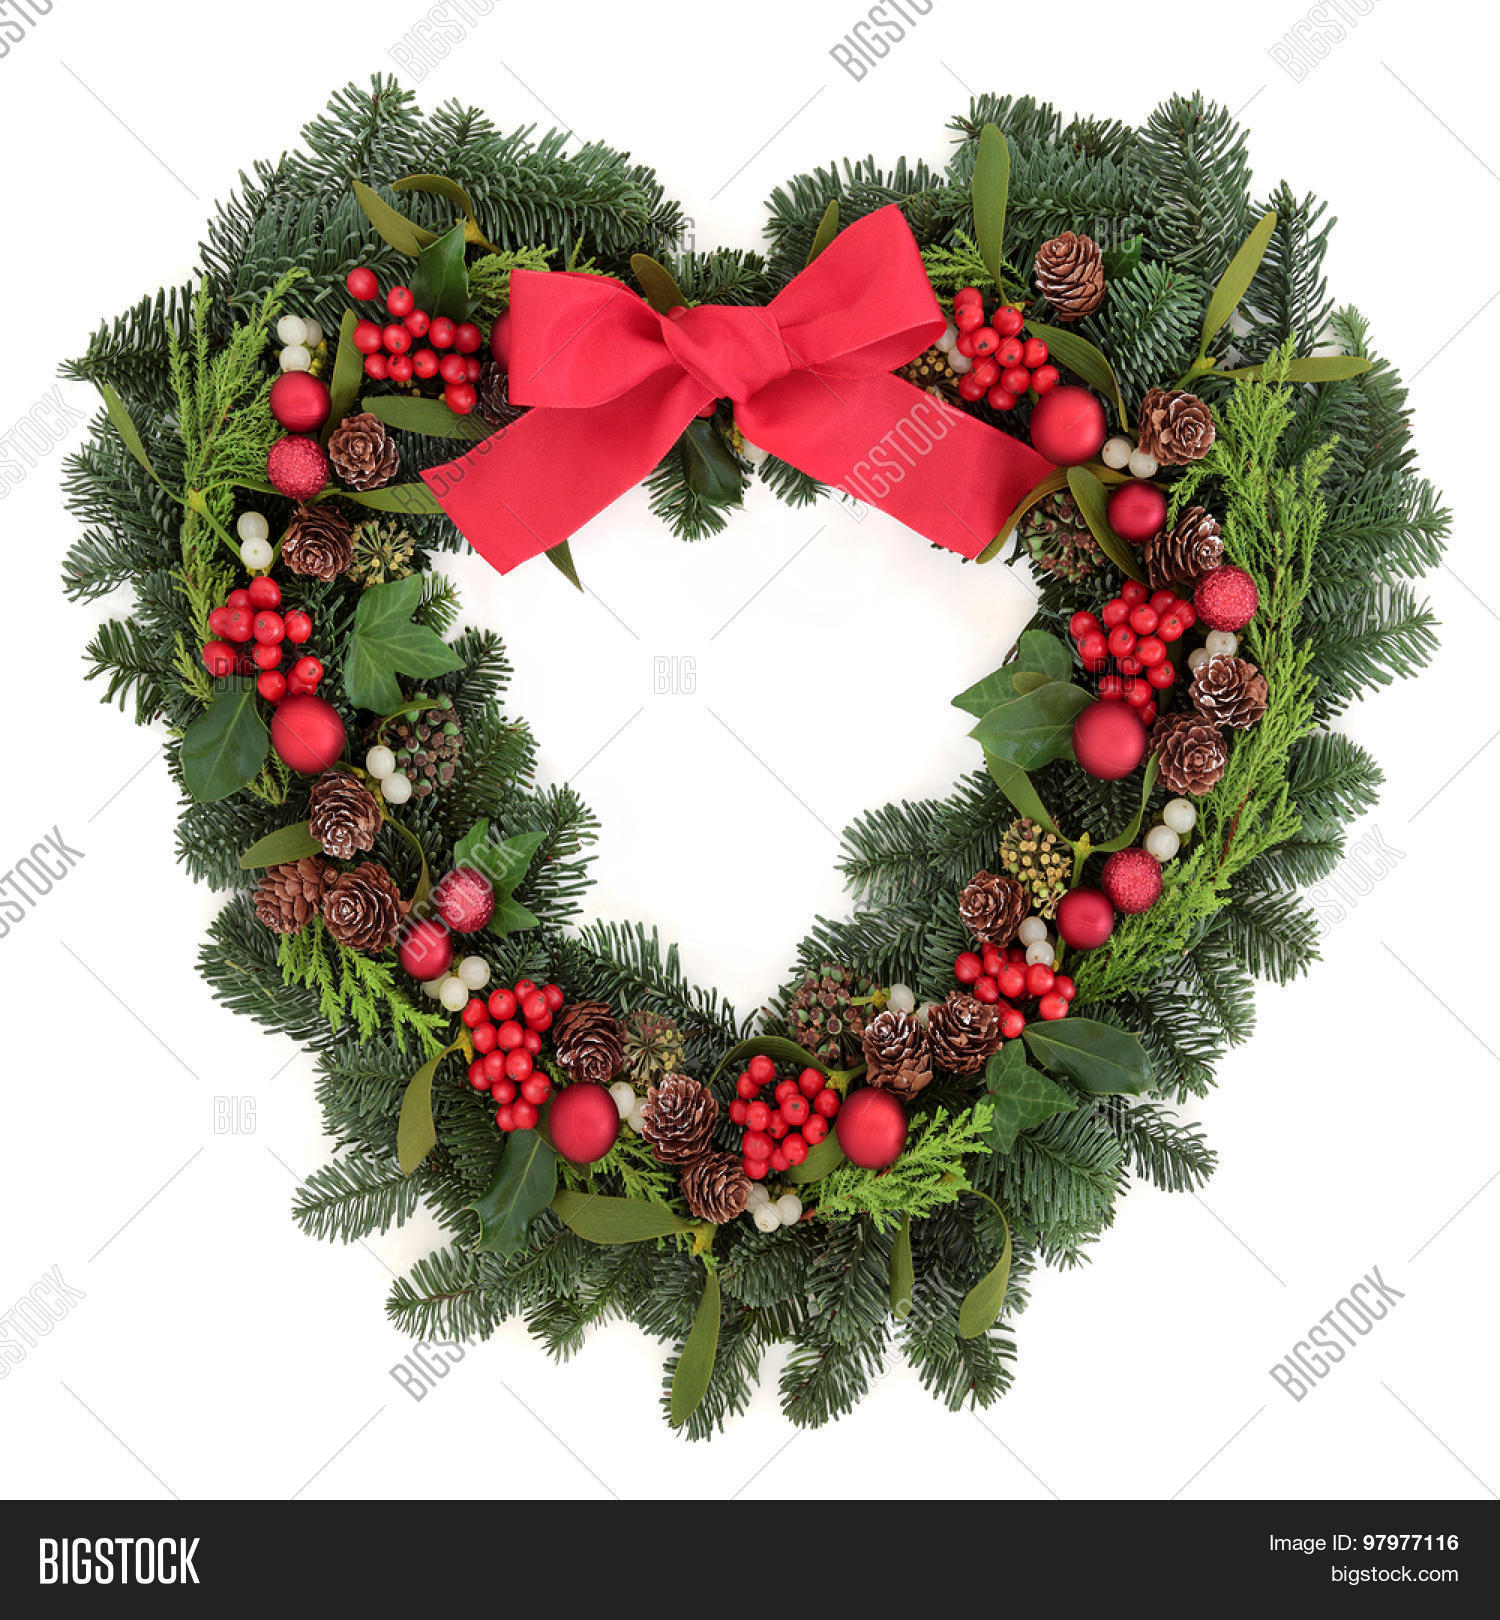 Christmas heart shaped wreath red image photo bigstock